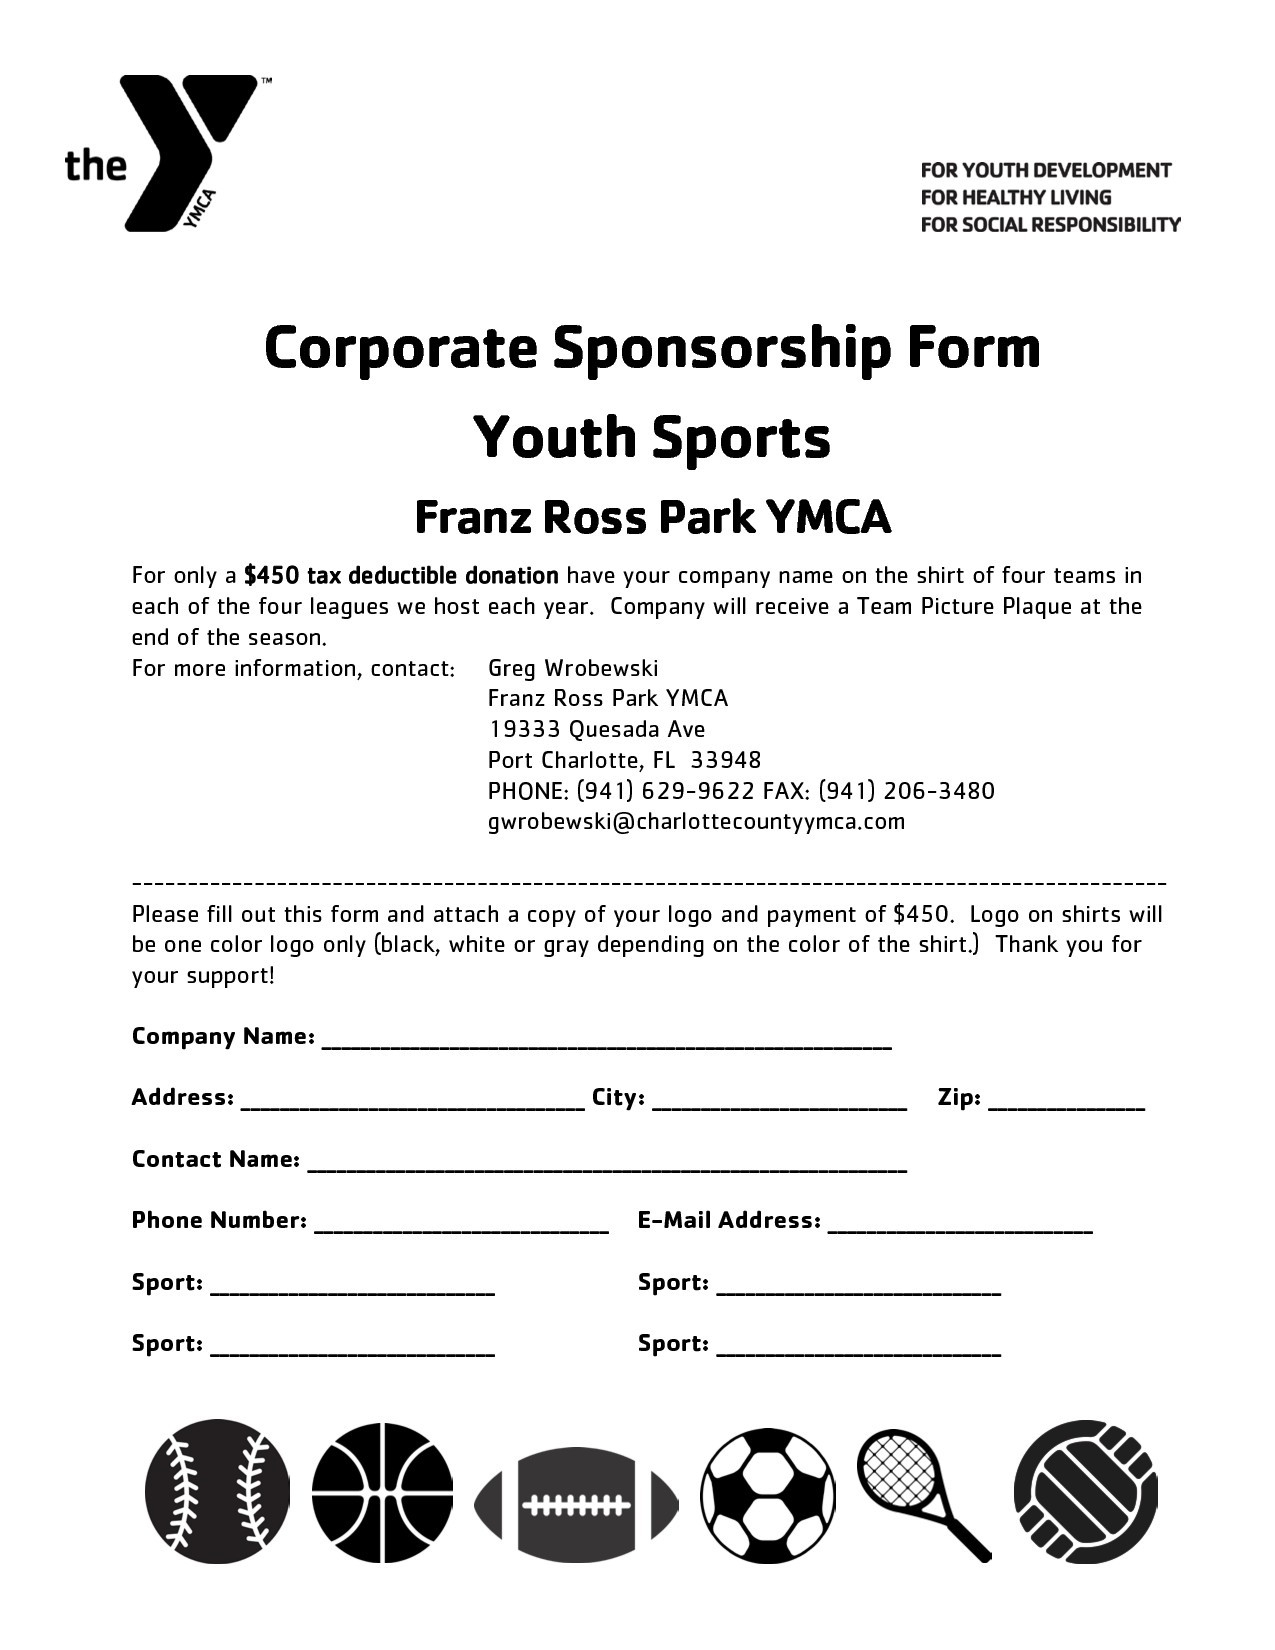 Fundraising Letter Template for Sports Teams - Sponsorship Letter Template for Sports Team